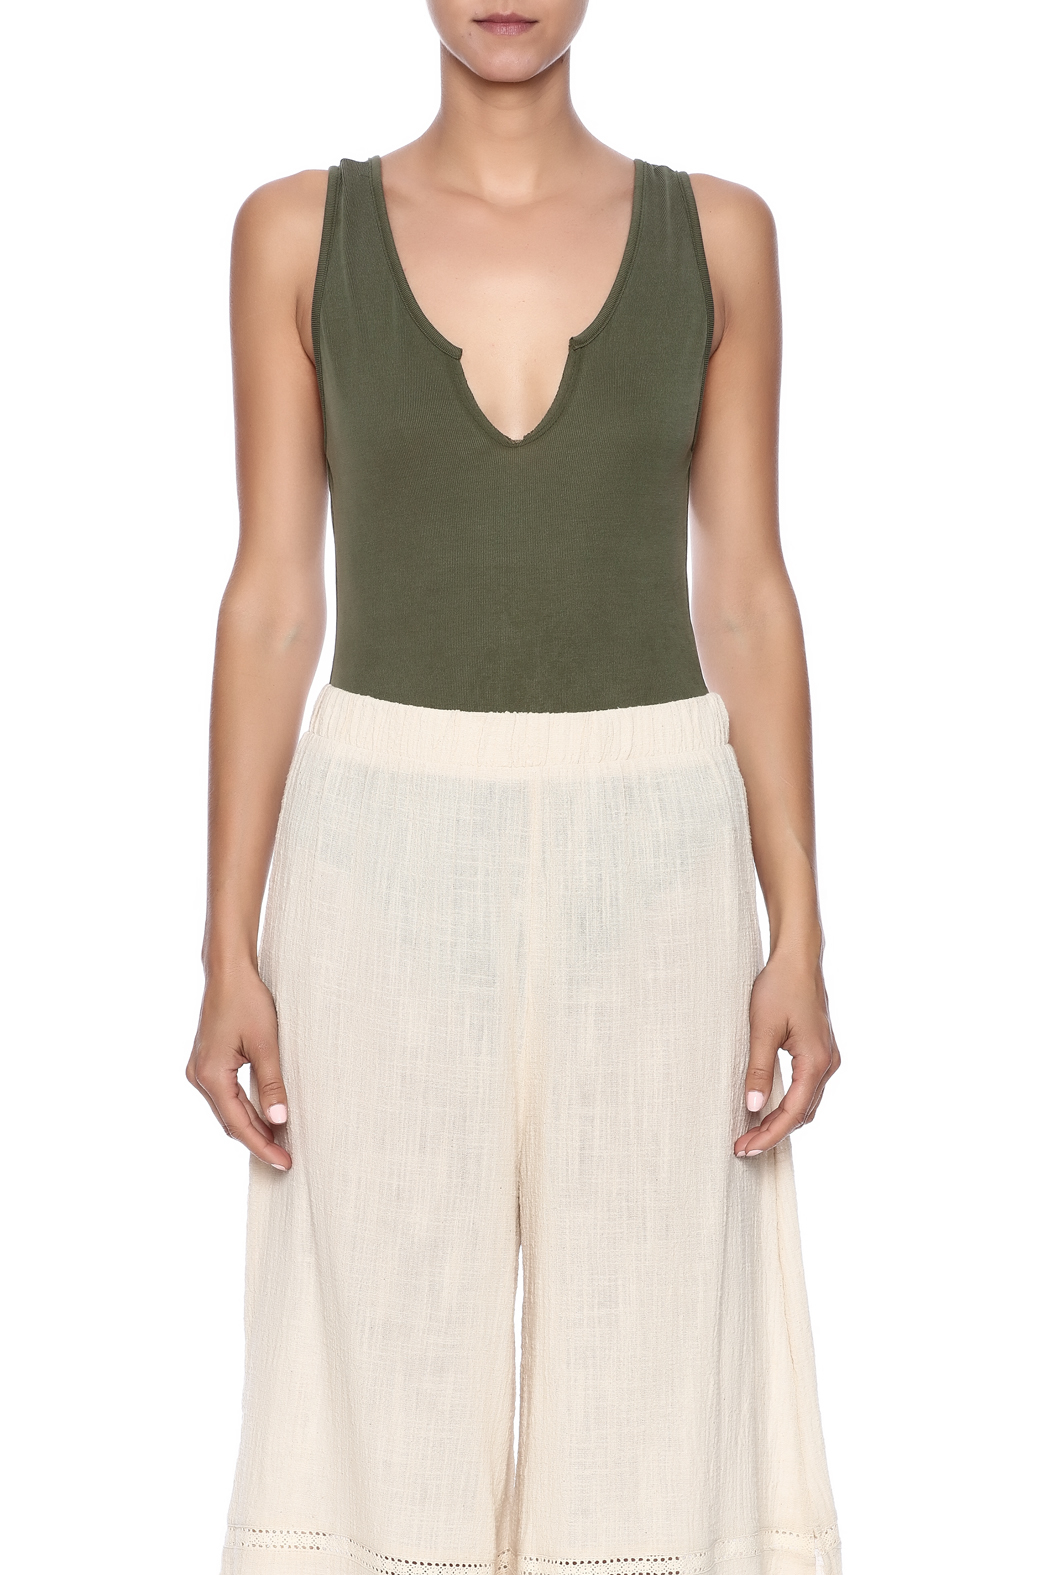 Audrey 3+1 Plunge Neck Bodysuit - Side Cropped Image